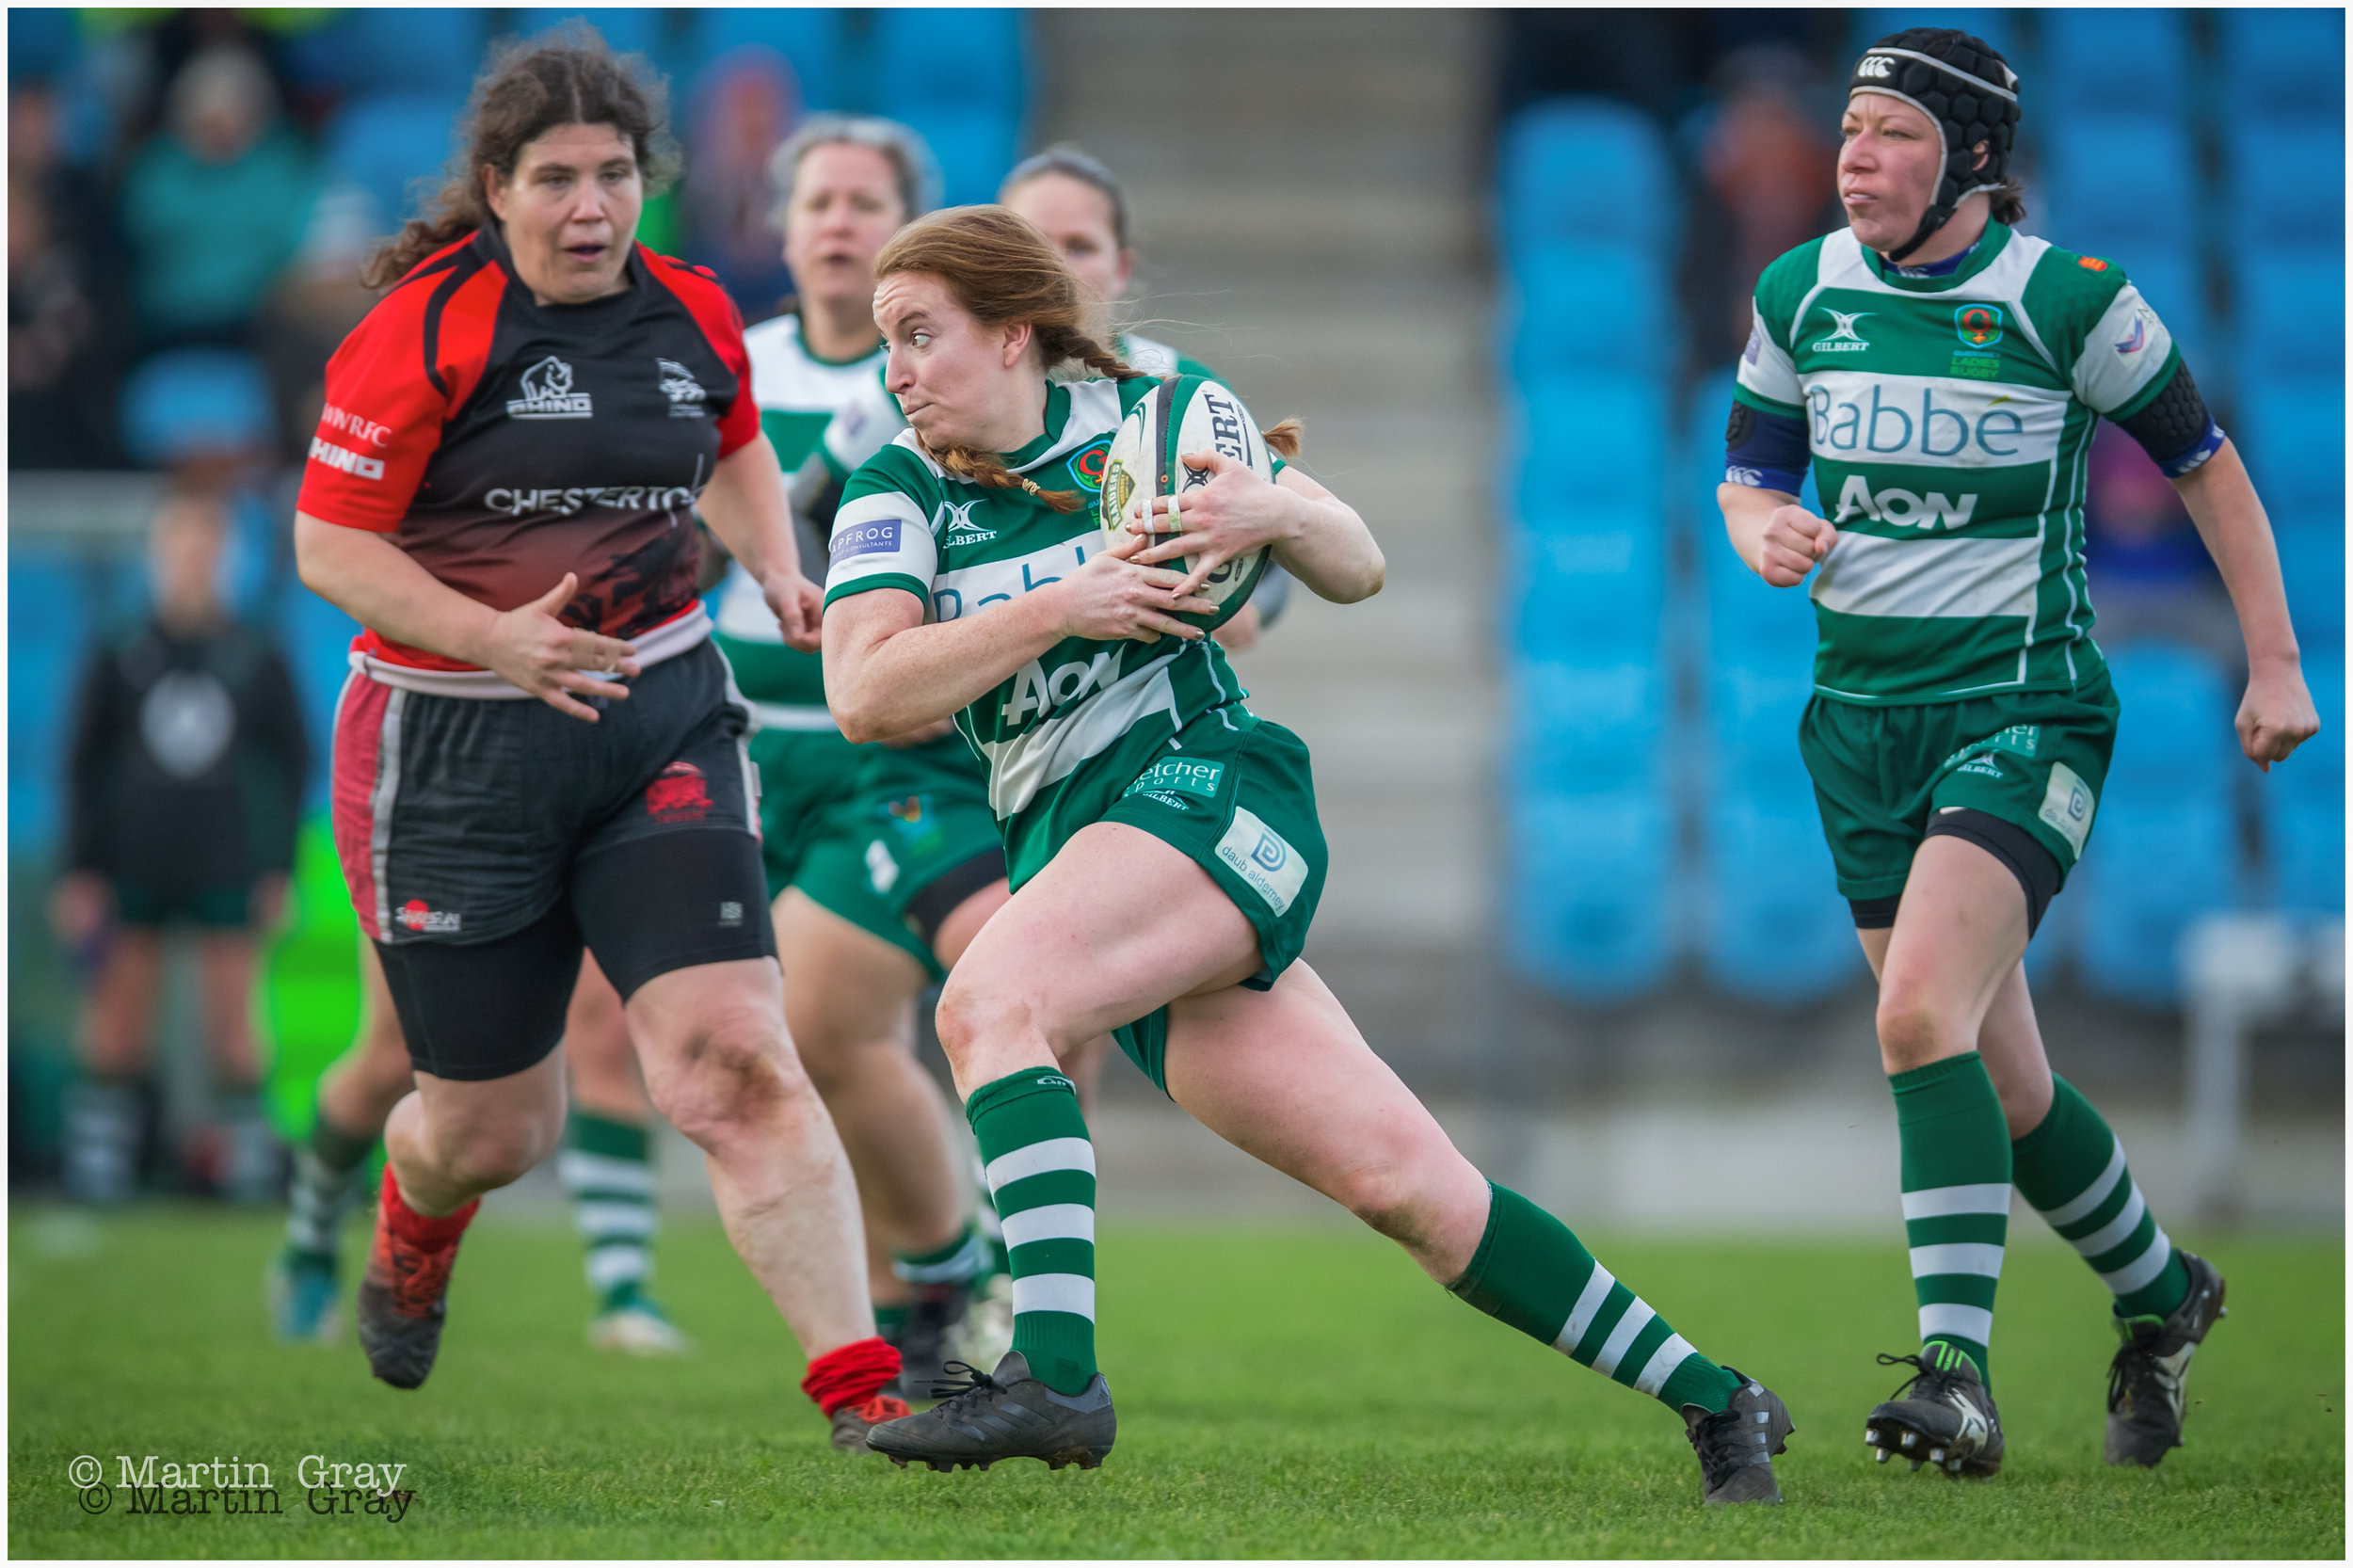 Guernsey Ladies v London Welsh Ladies played at Footes Lane… 13th January 2019… All level at 15-15 in a hard fought battle!